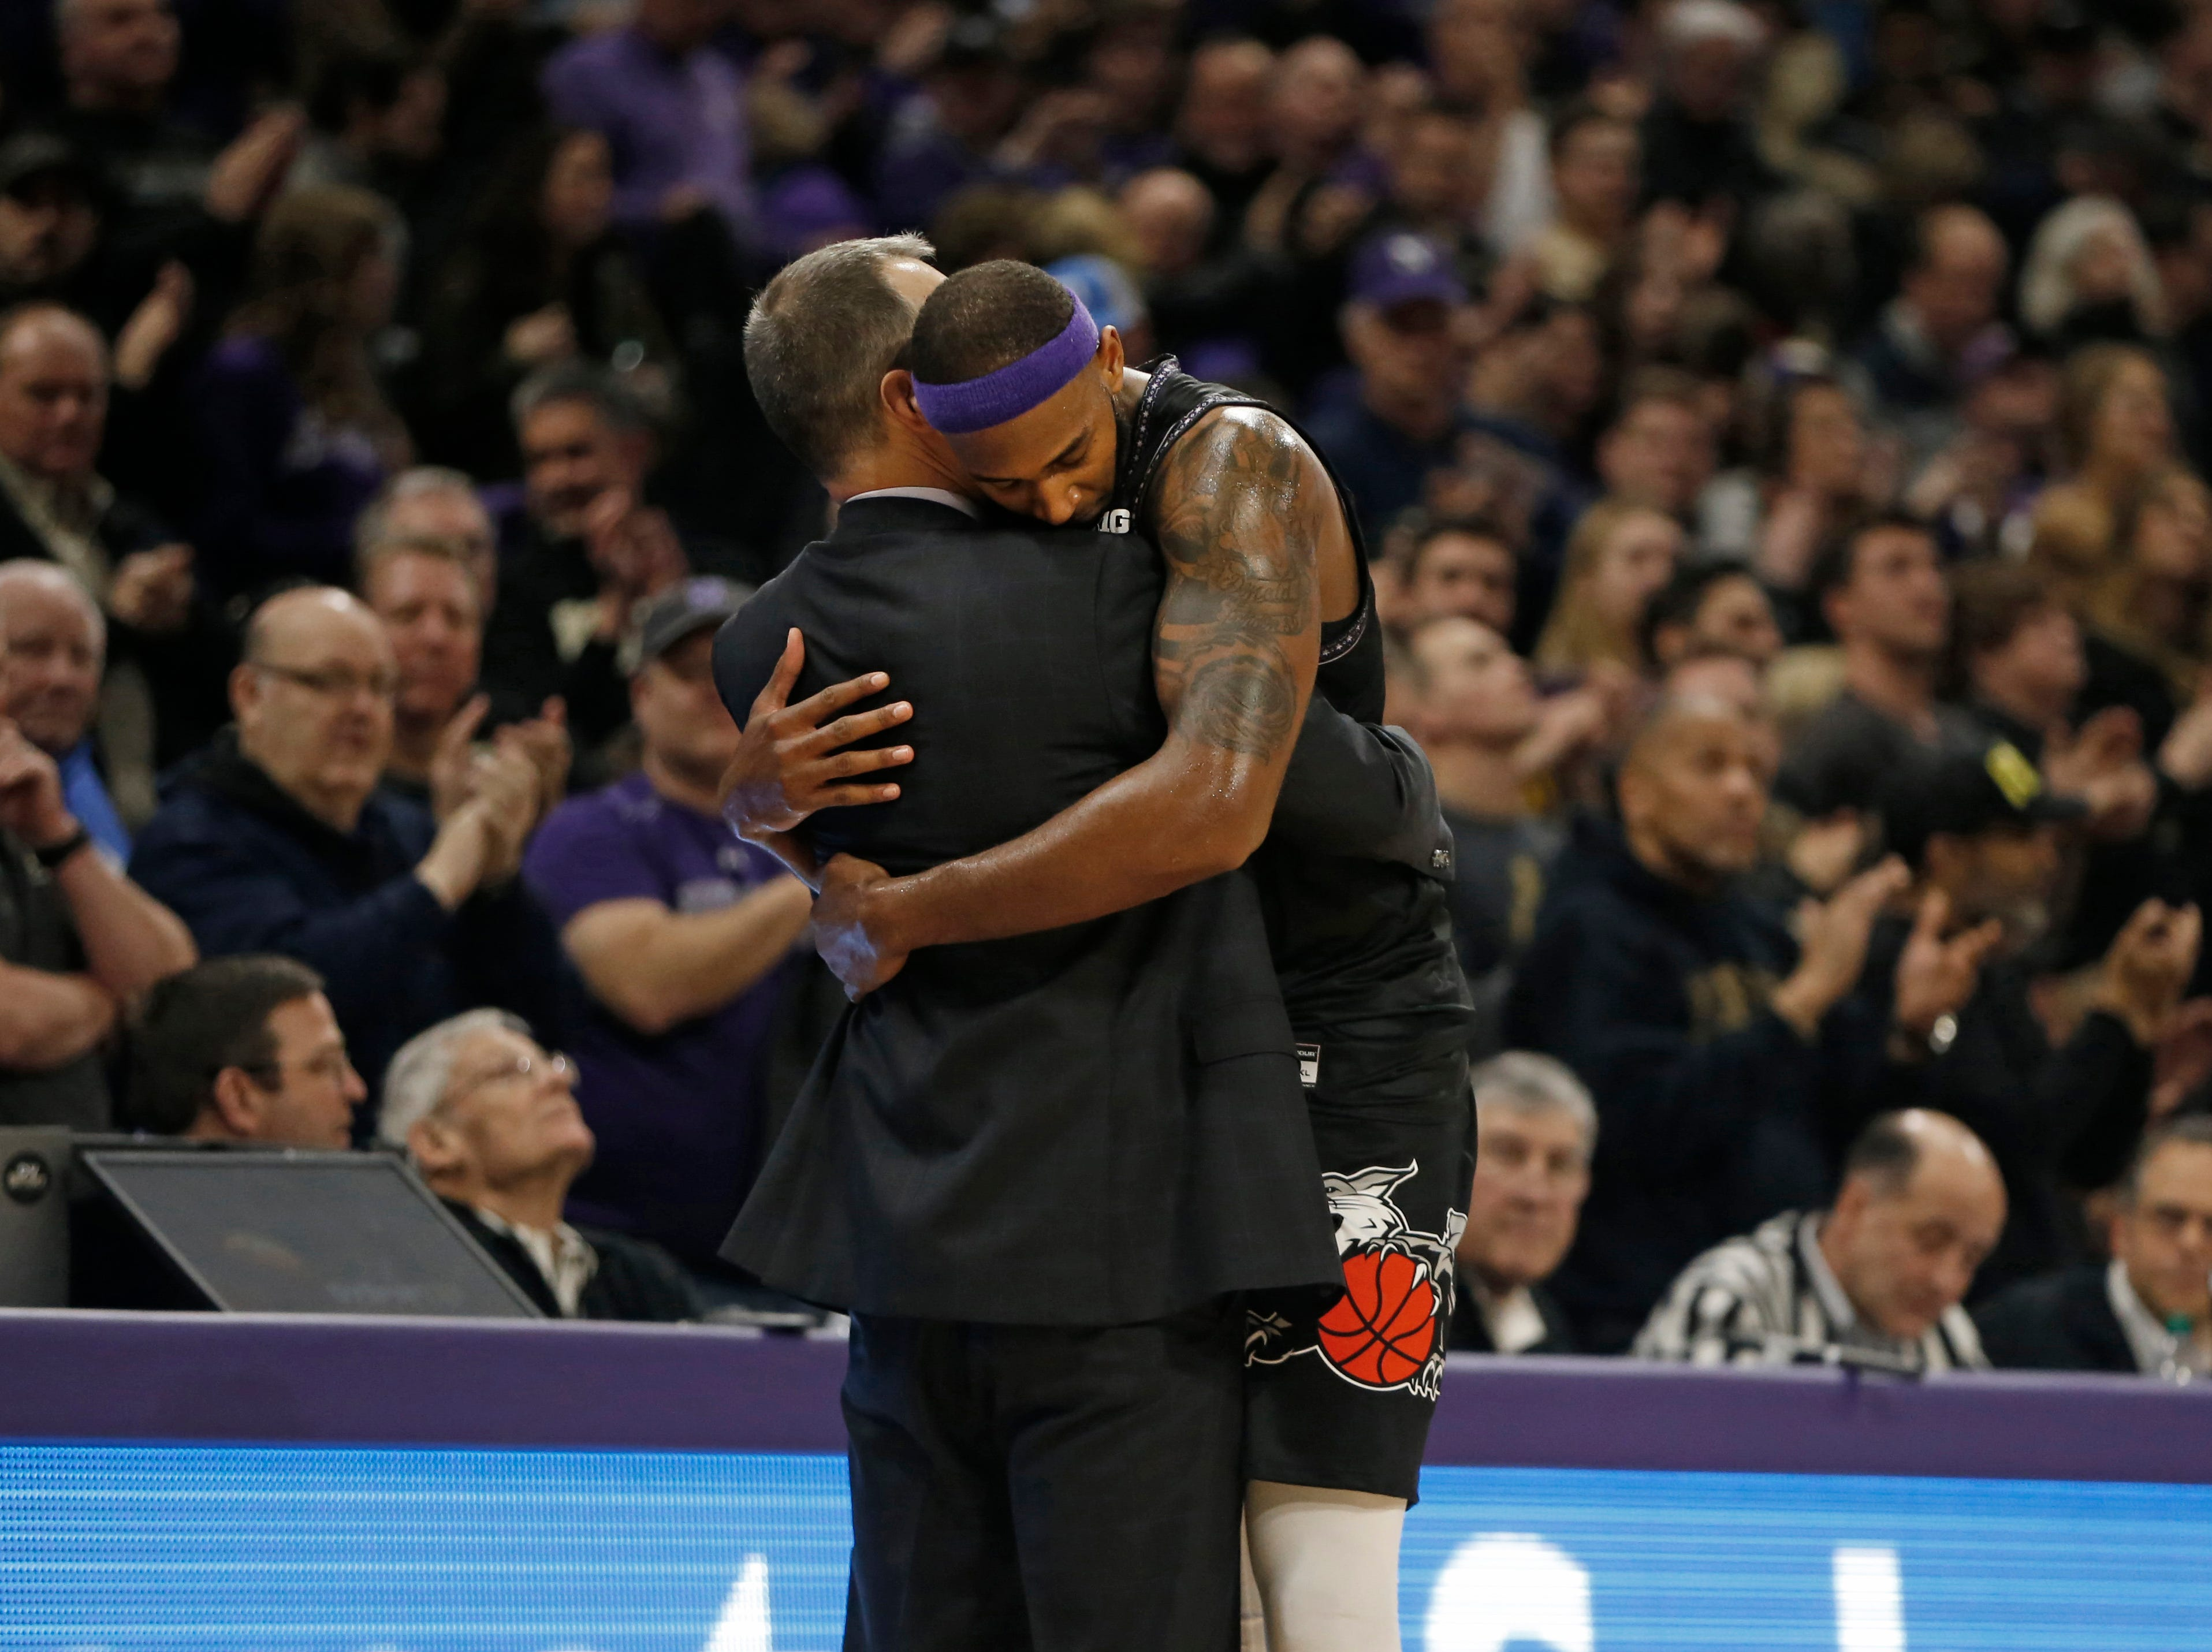 Mar 9, 2019; Evanston, IL, USA; Northwestern Wildcats center Dererk Pardon hugs head coach Chris Collins after leaving the game with seconds left on the clock during the second half against the Purdue Boilermakers at Welsh-Ryan Arena. Mandatory Credit: Nuccio DiNuzzo-USA TODAY Sports